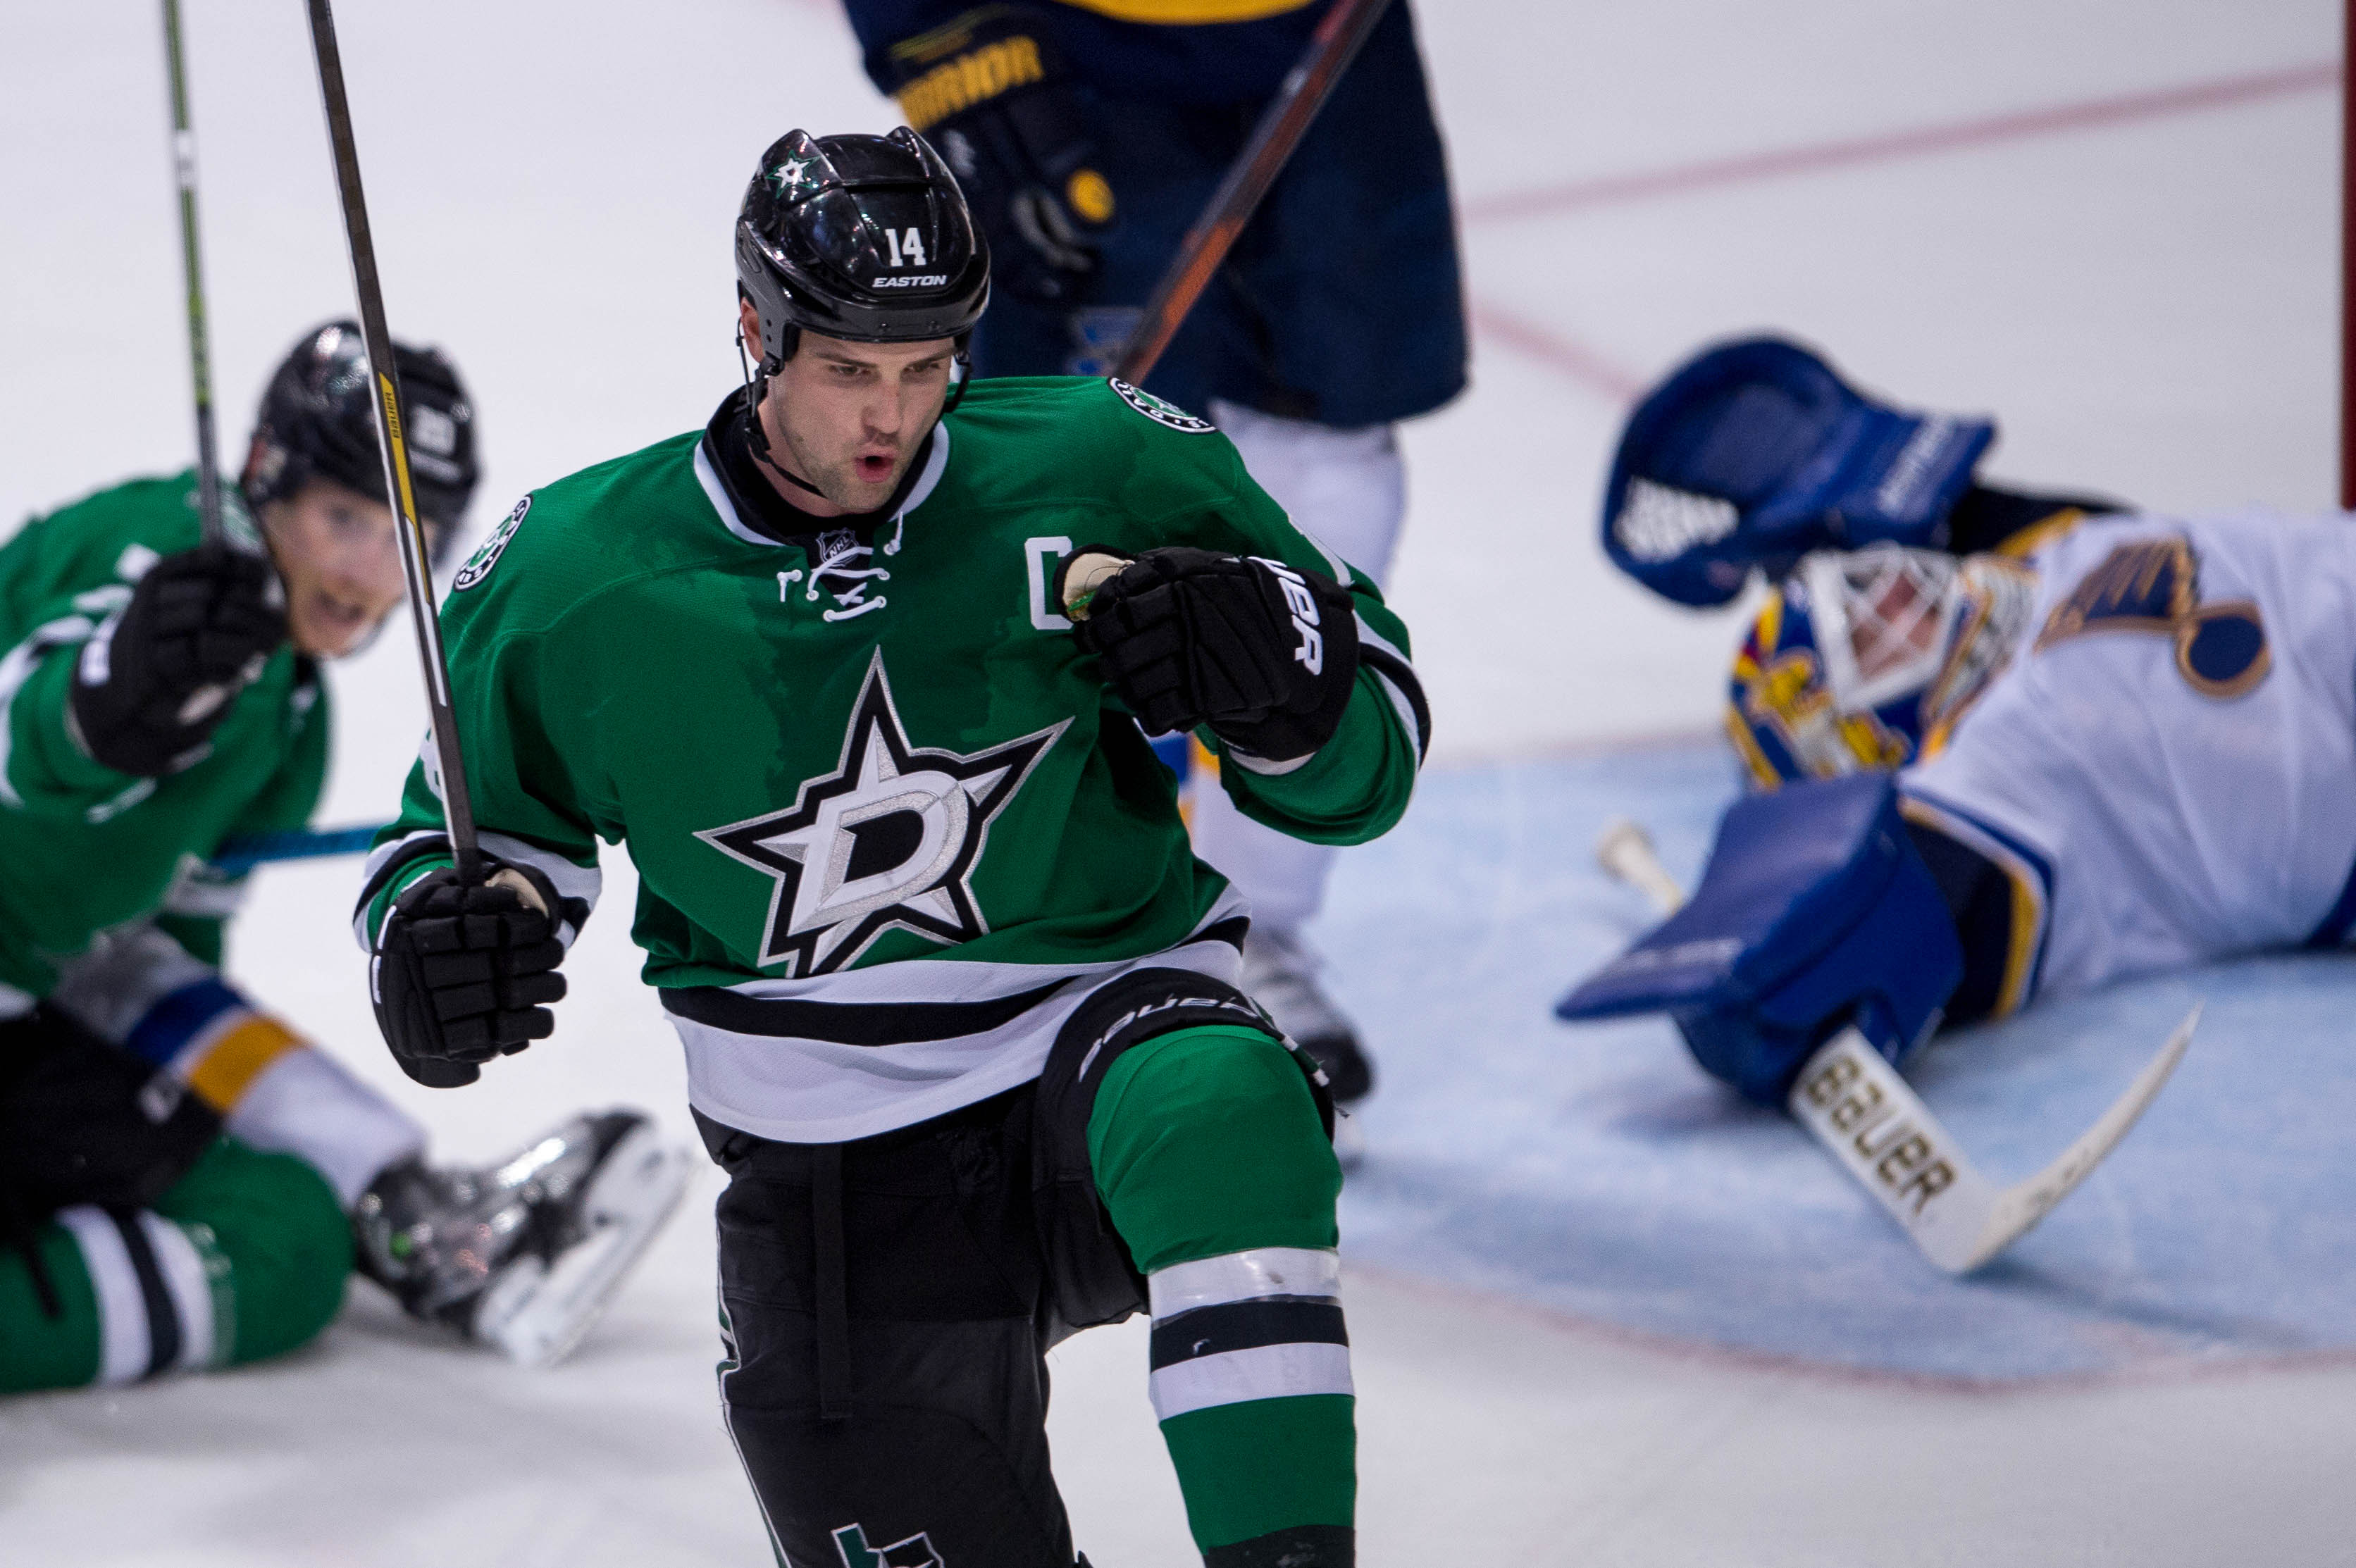 9296789-nhl-stanley-cup-playoffs-st.-louis-blues-at-dallas-stars